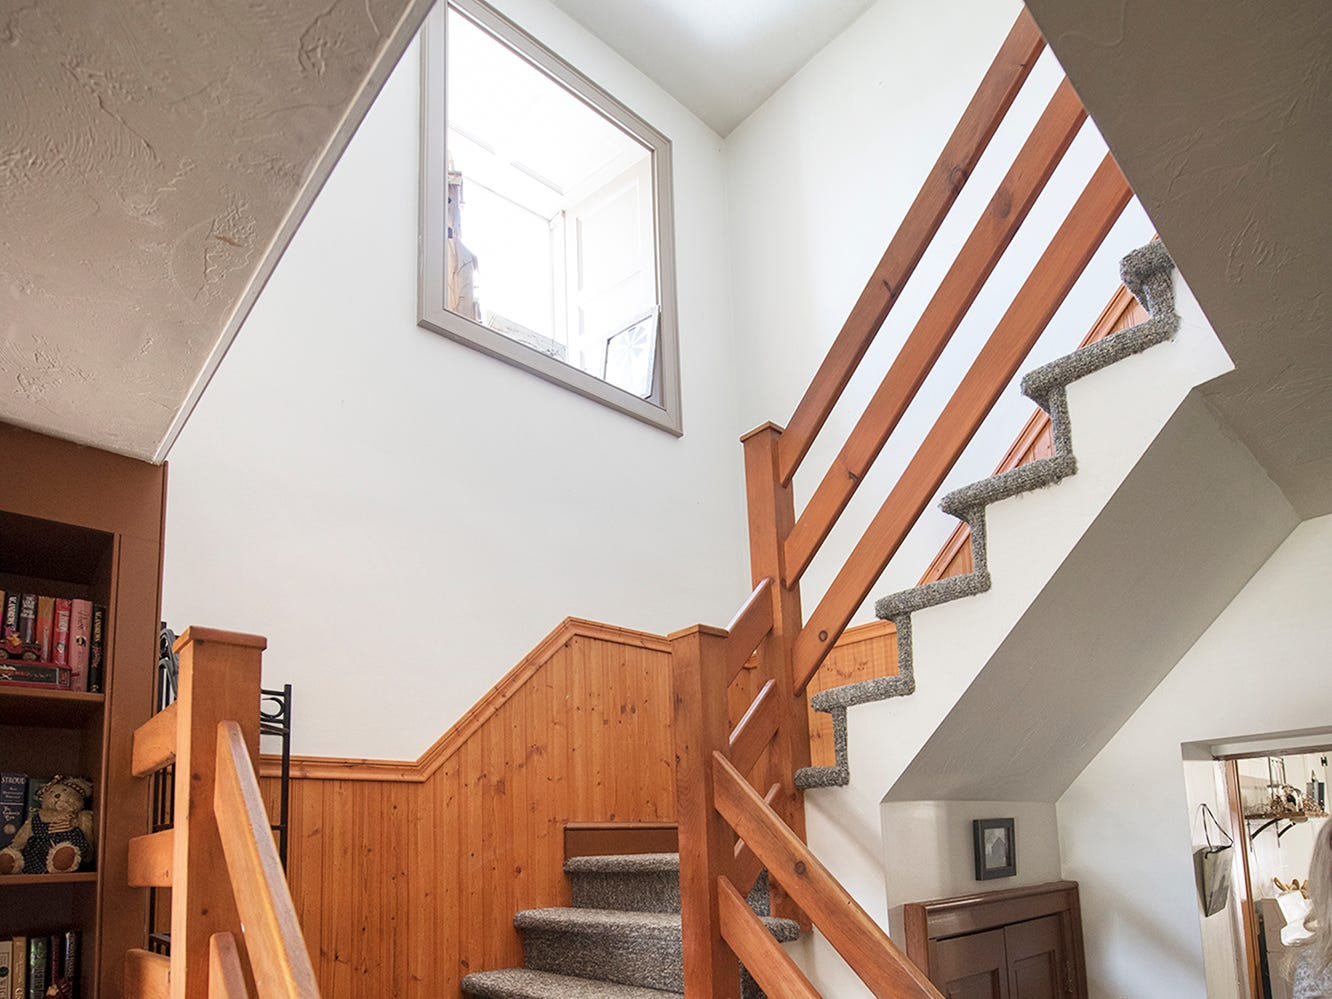 The main staircase leads to the second floor at Gray Goose Manor in Springfield Township.